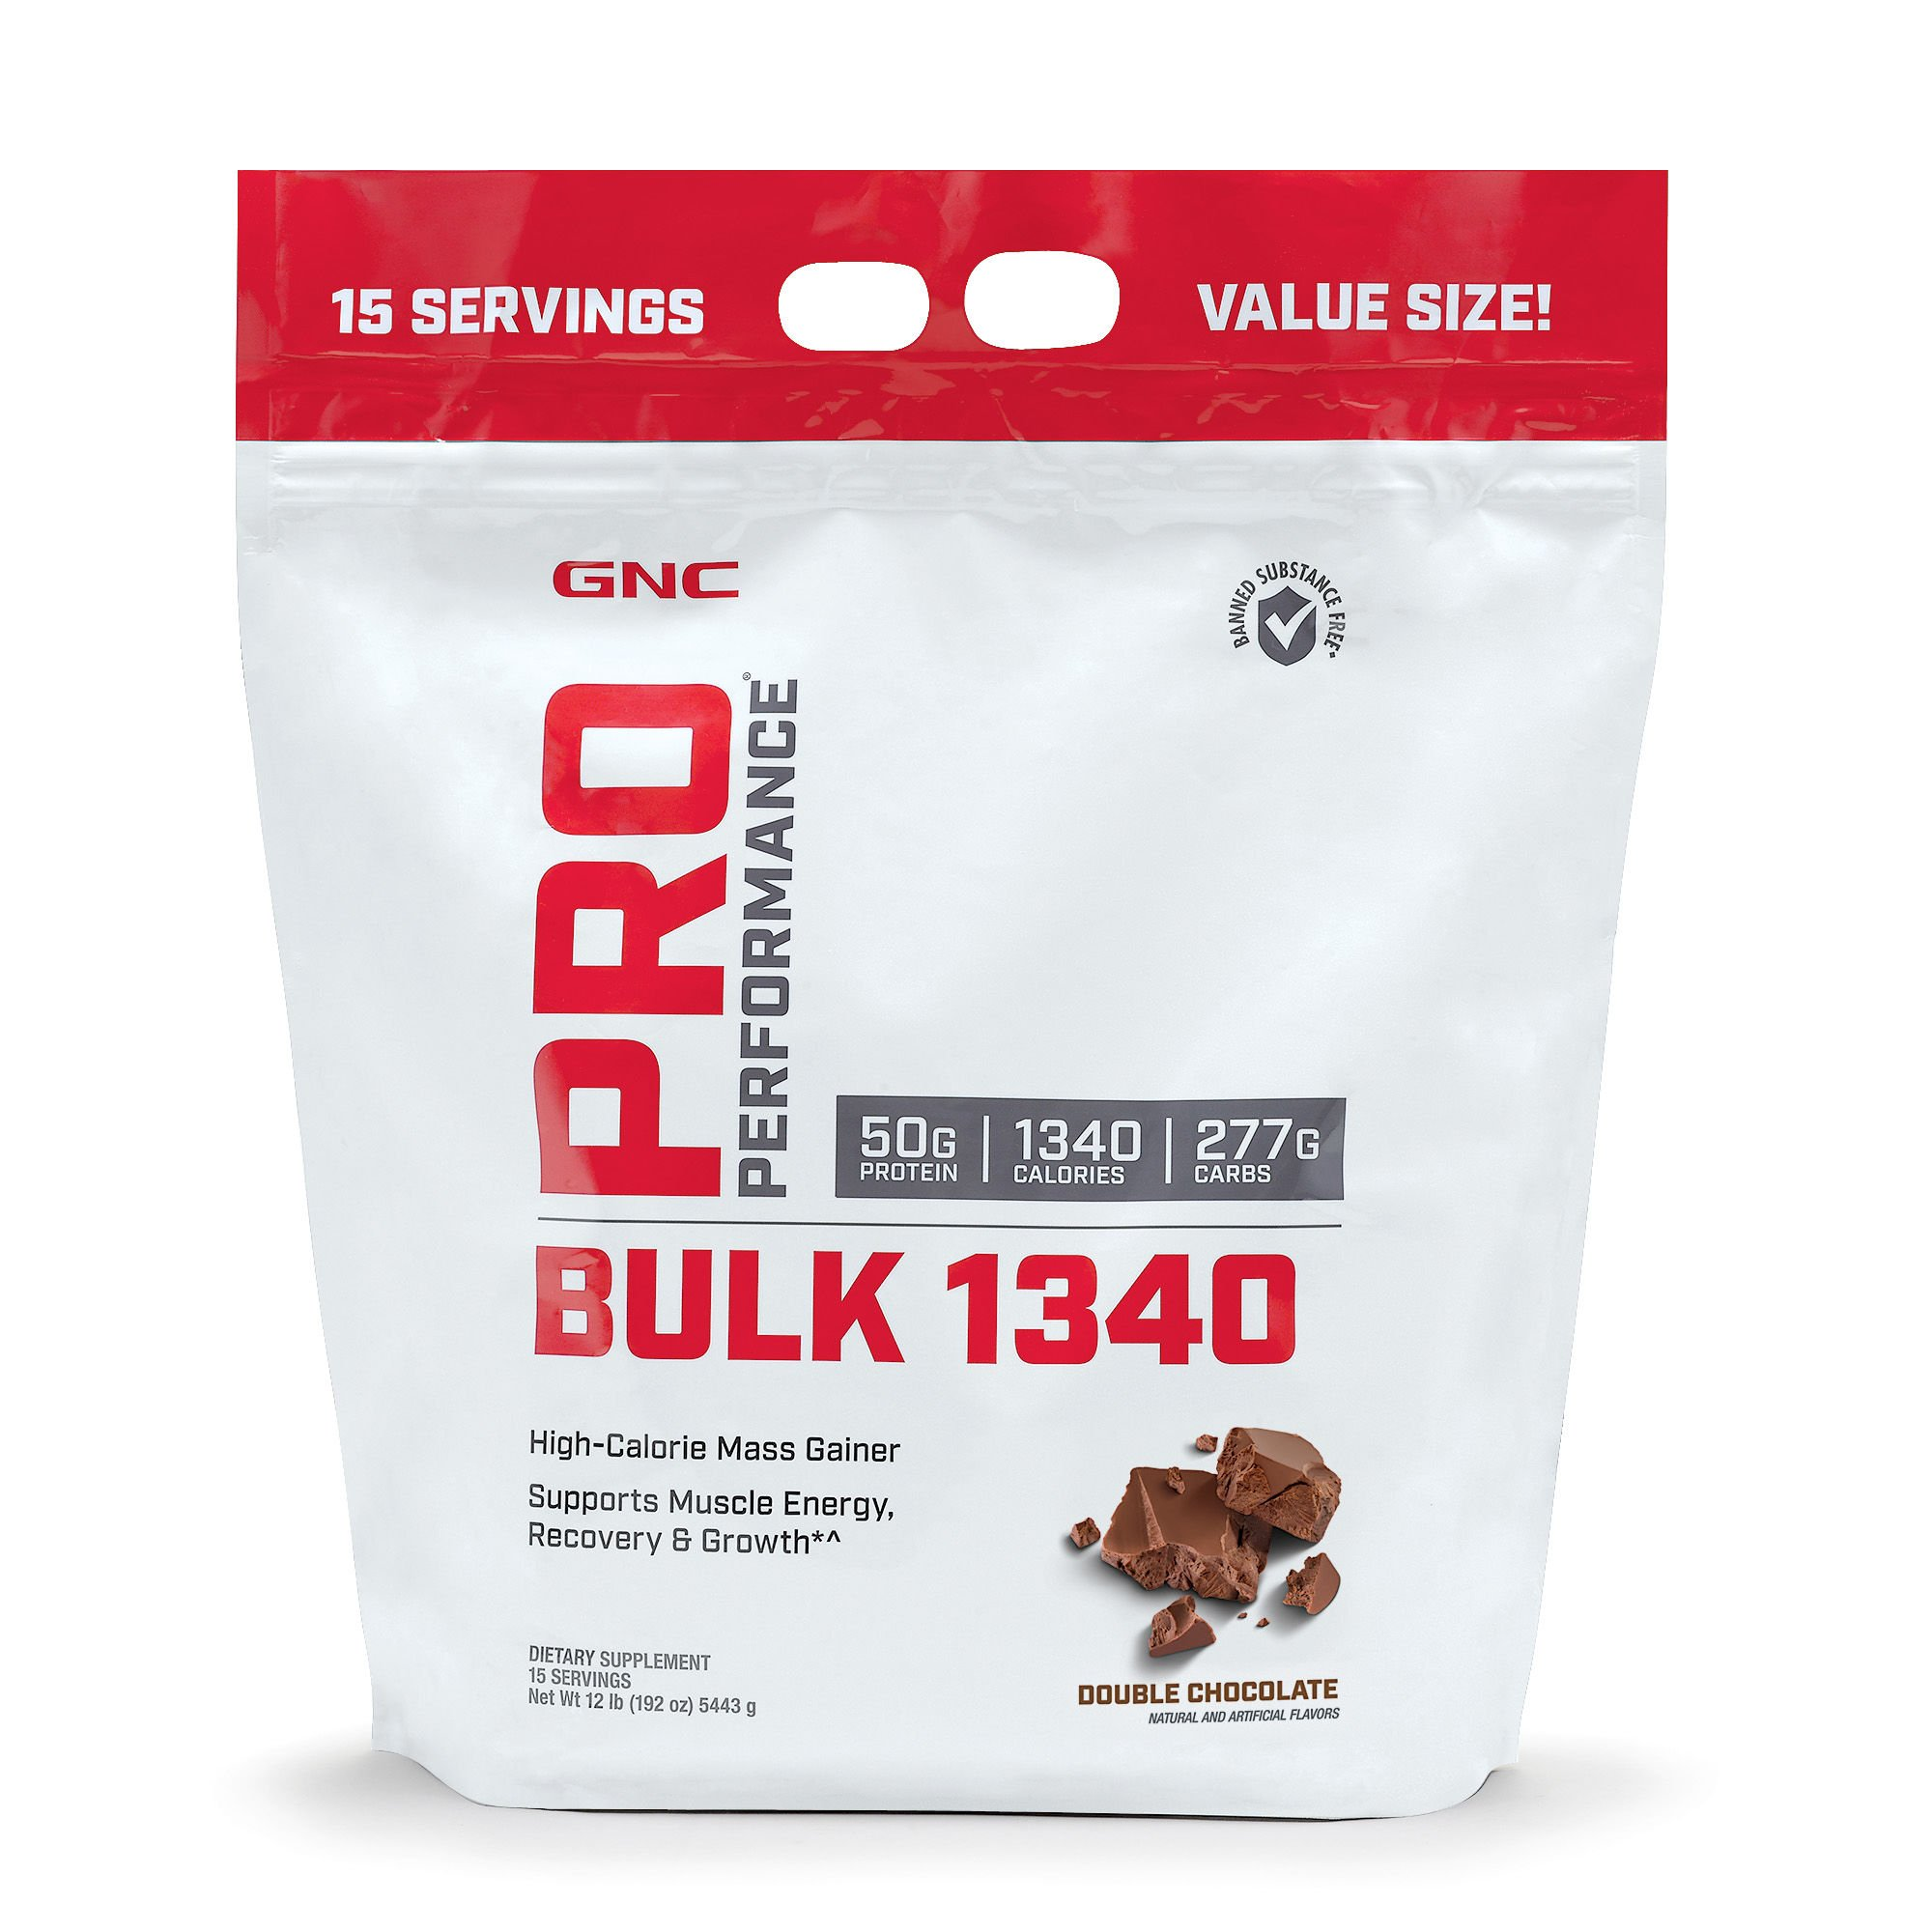 GNC Pro Performance Bulk 1340, Double Chocolate, 12 lbs, Supports Muscle Energy, Recovery and Growth